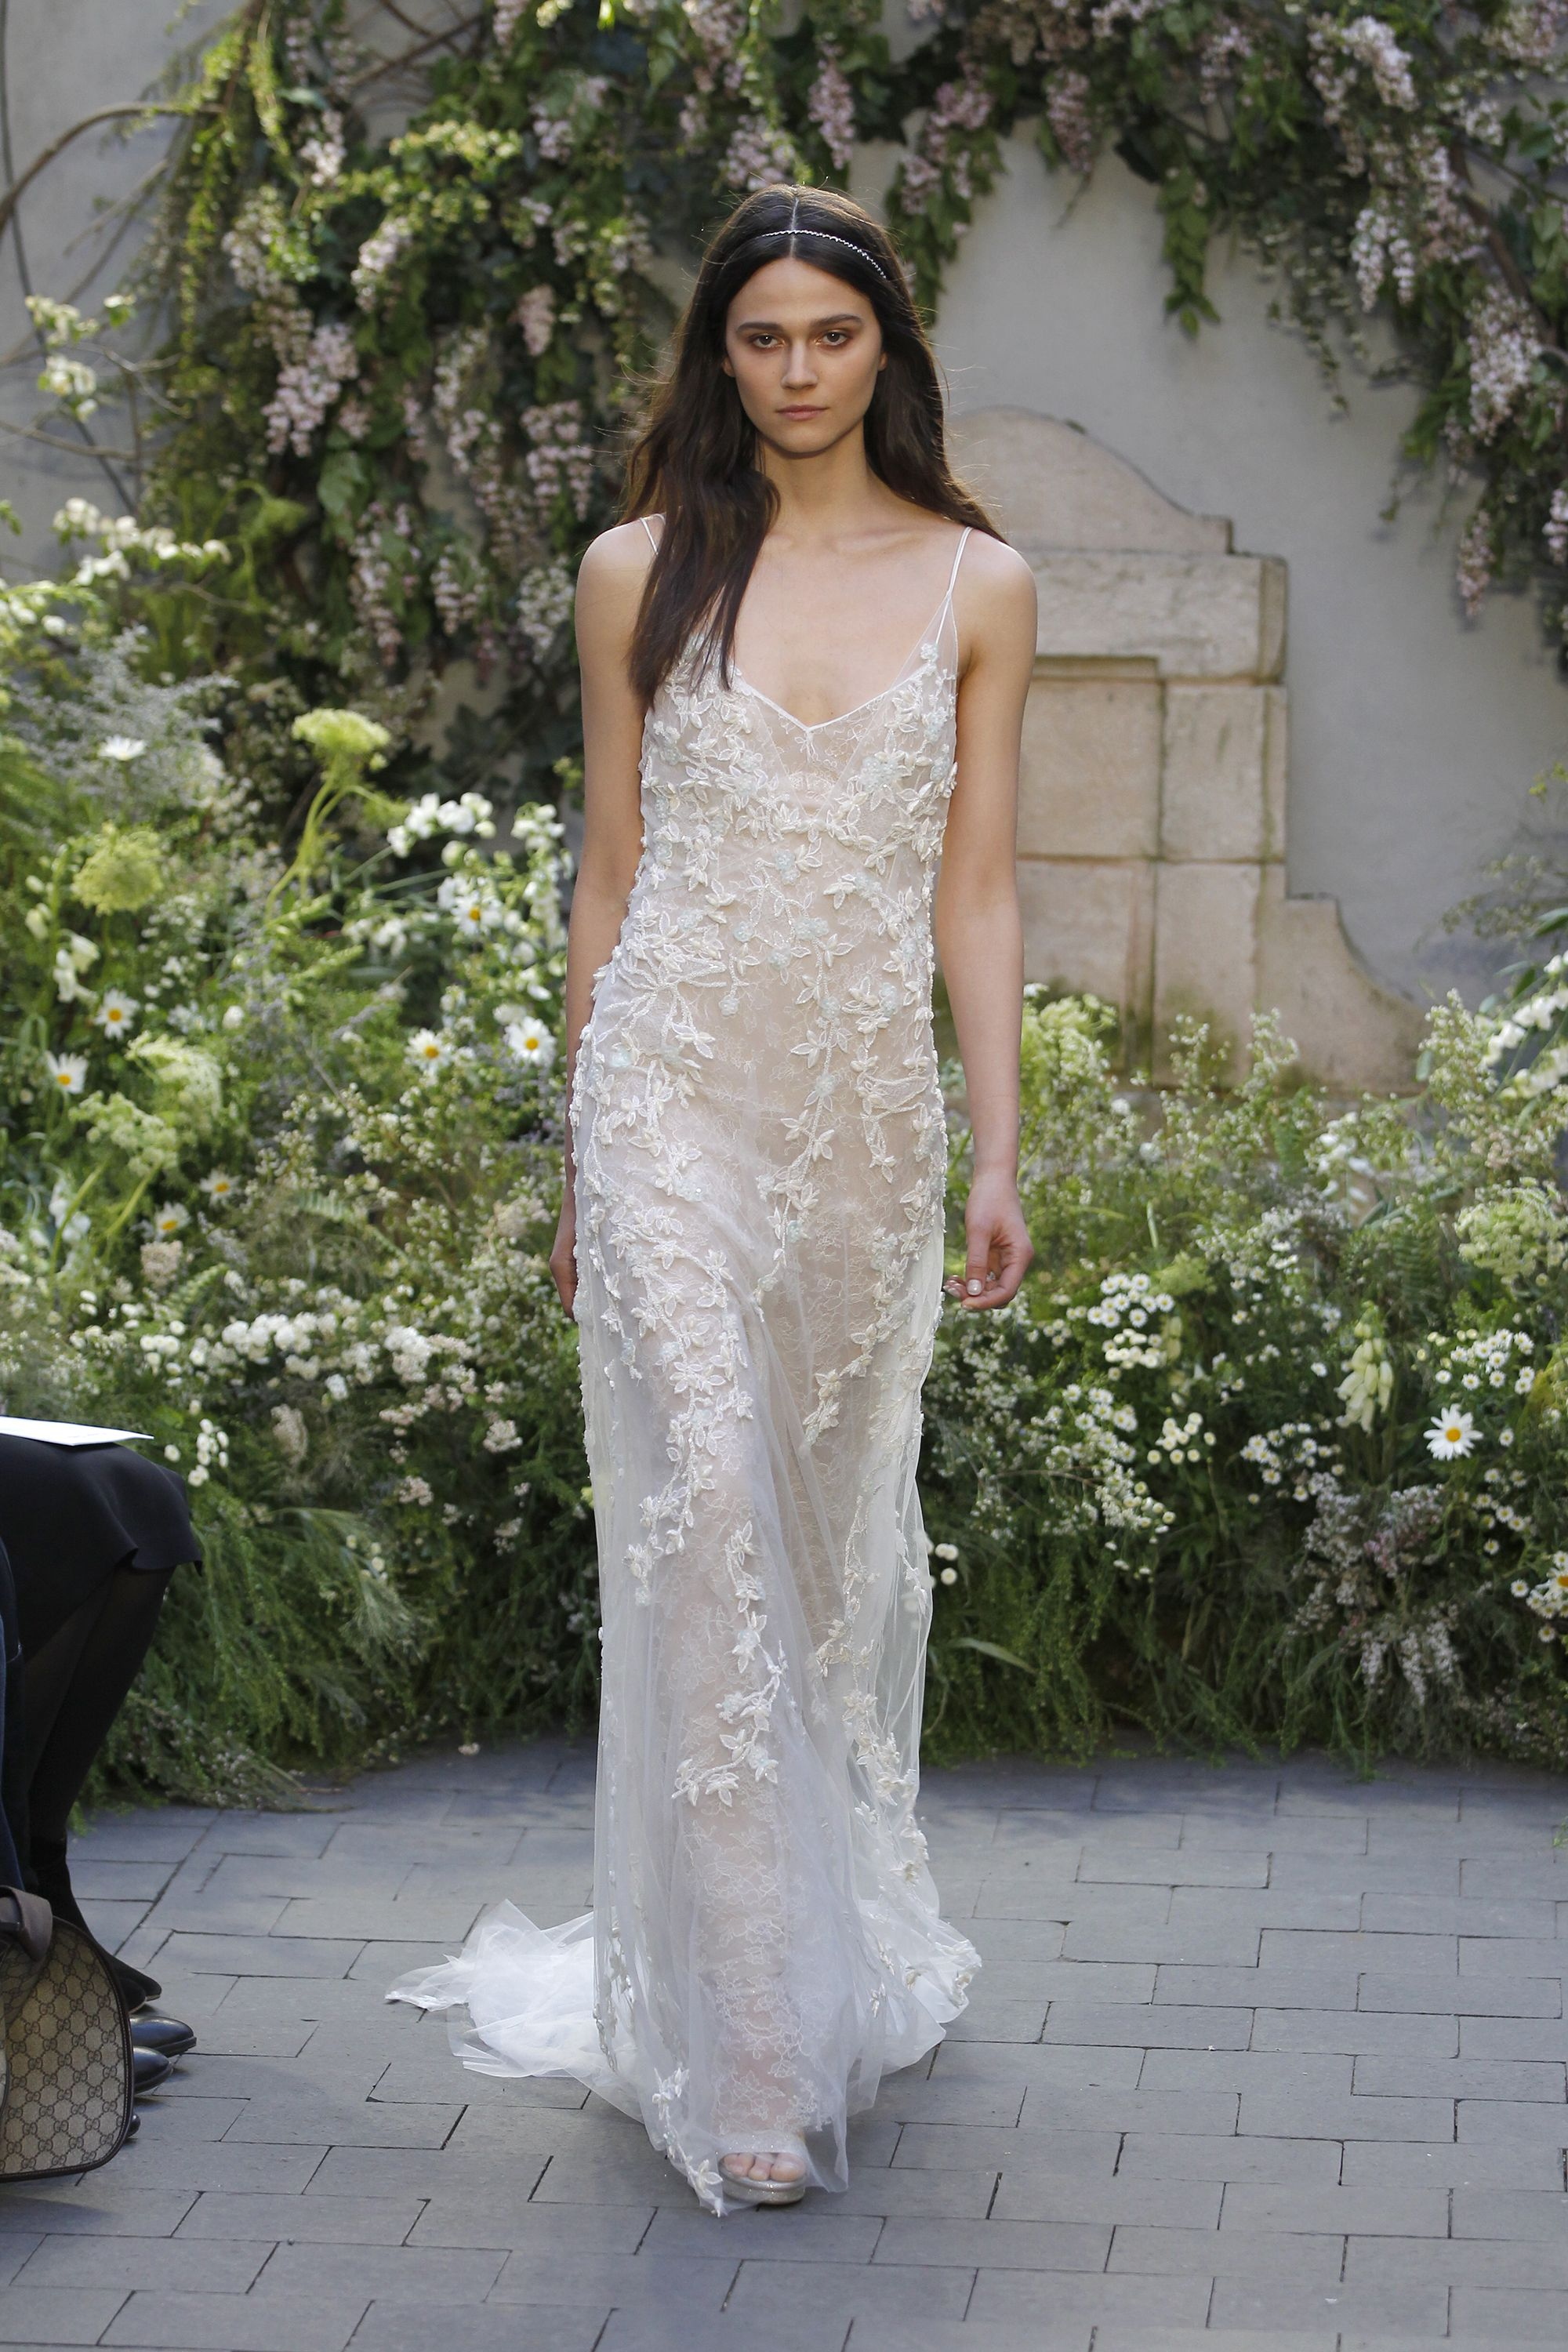 Wedding Island dresses style pictures new photo